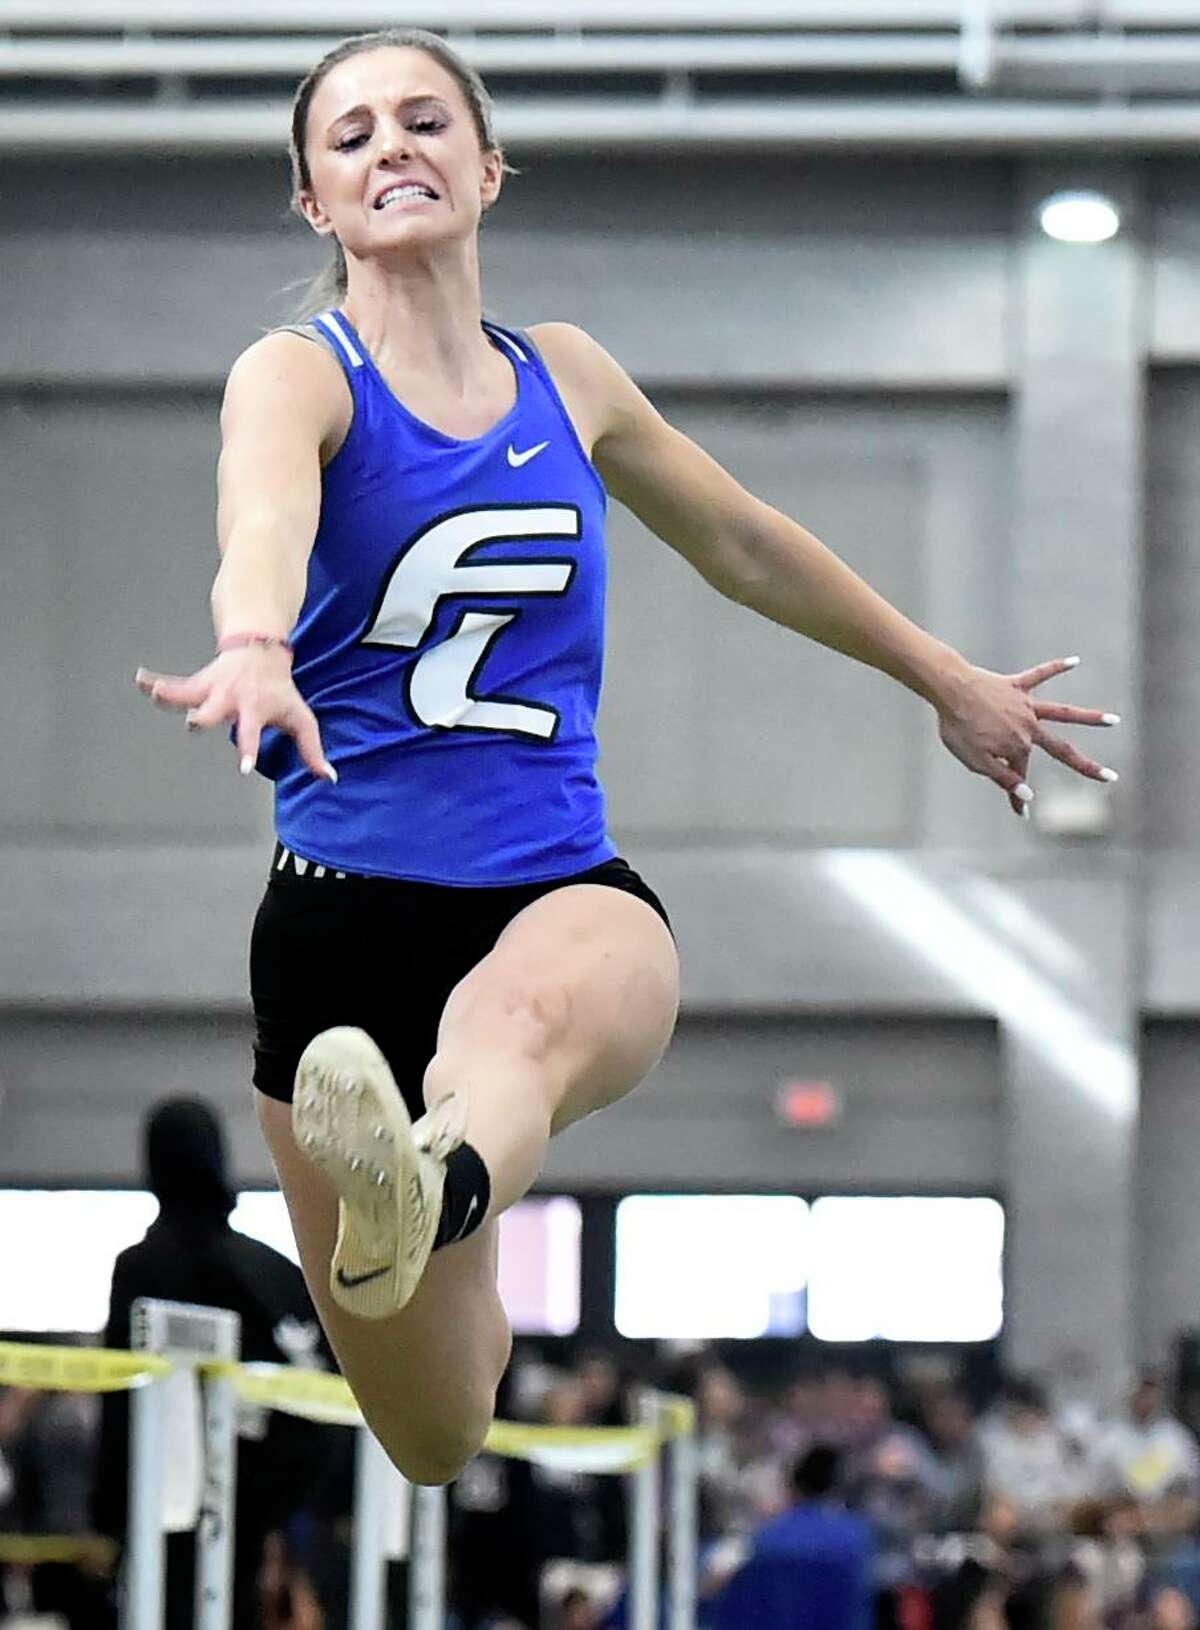 New Haven Connecticut - February 22, 2020: Tess Stapleton of Fairfield Ludlowe H.S. wins first place in the girls long jump during the CIAC State Open Indoor Track Championship Saturday at the Floyd Little Athletic Center in New Haven.